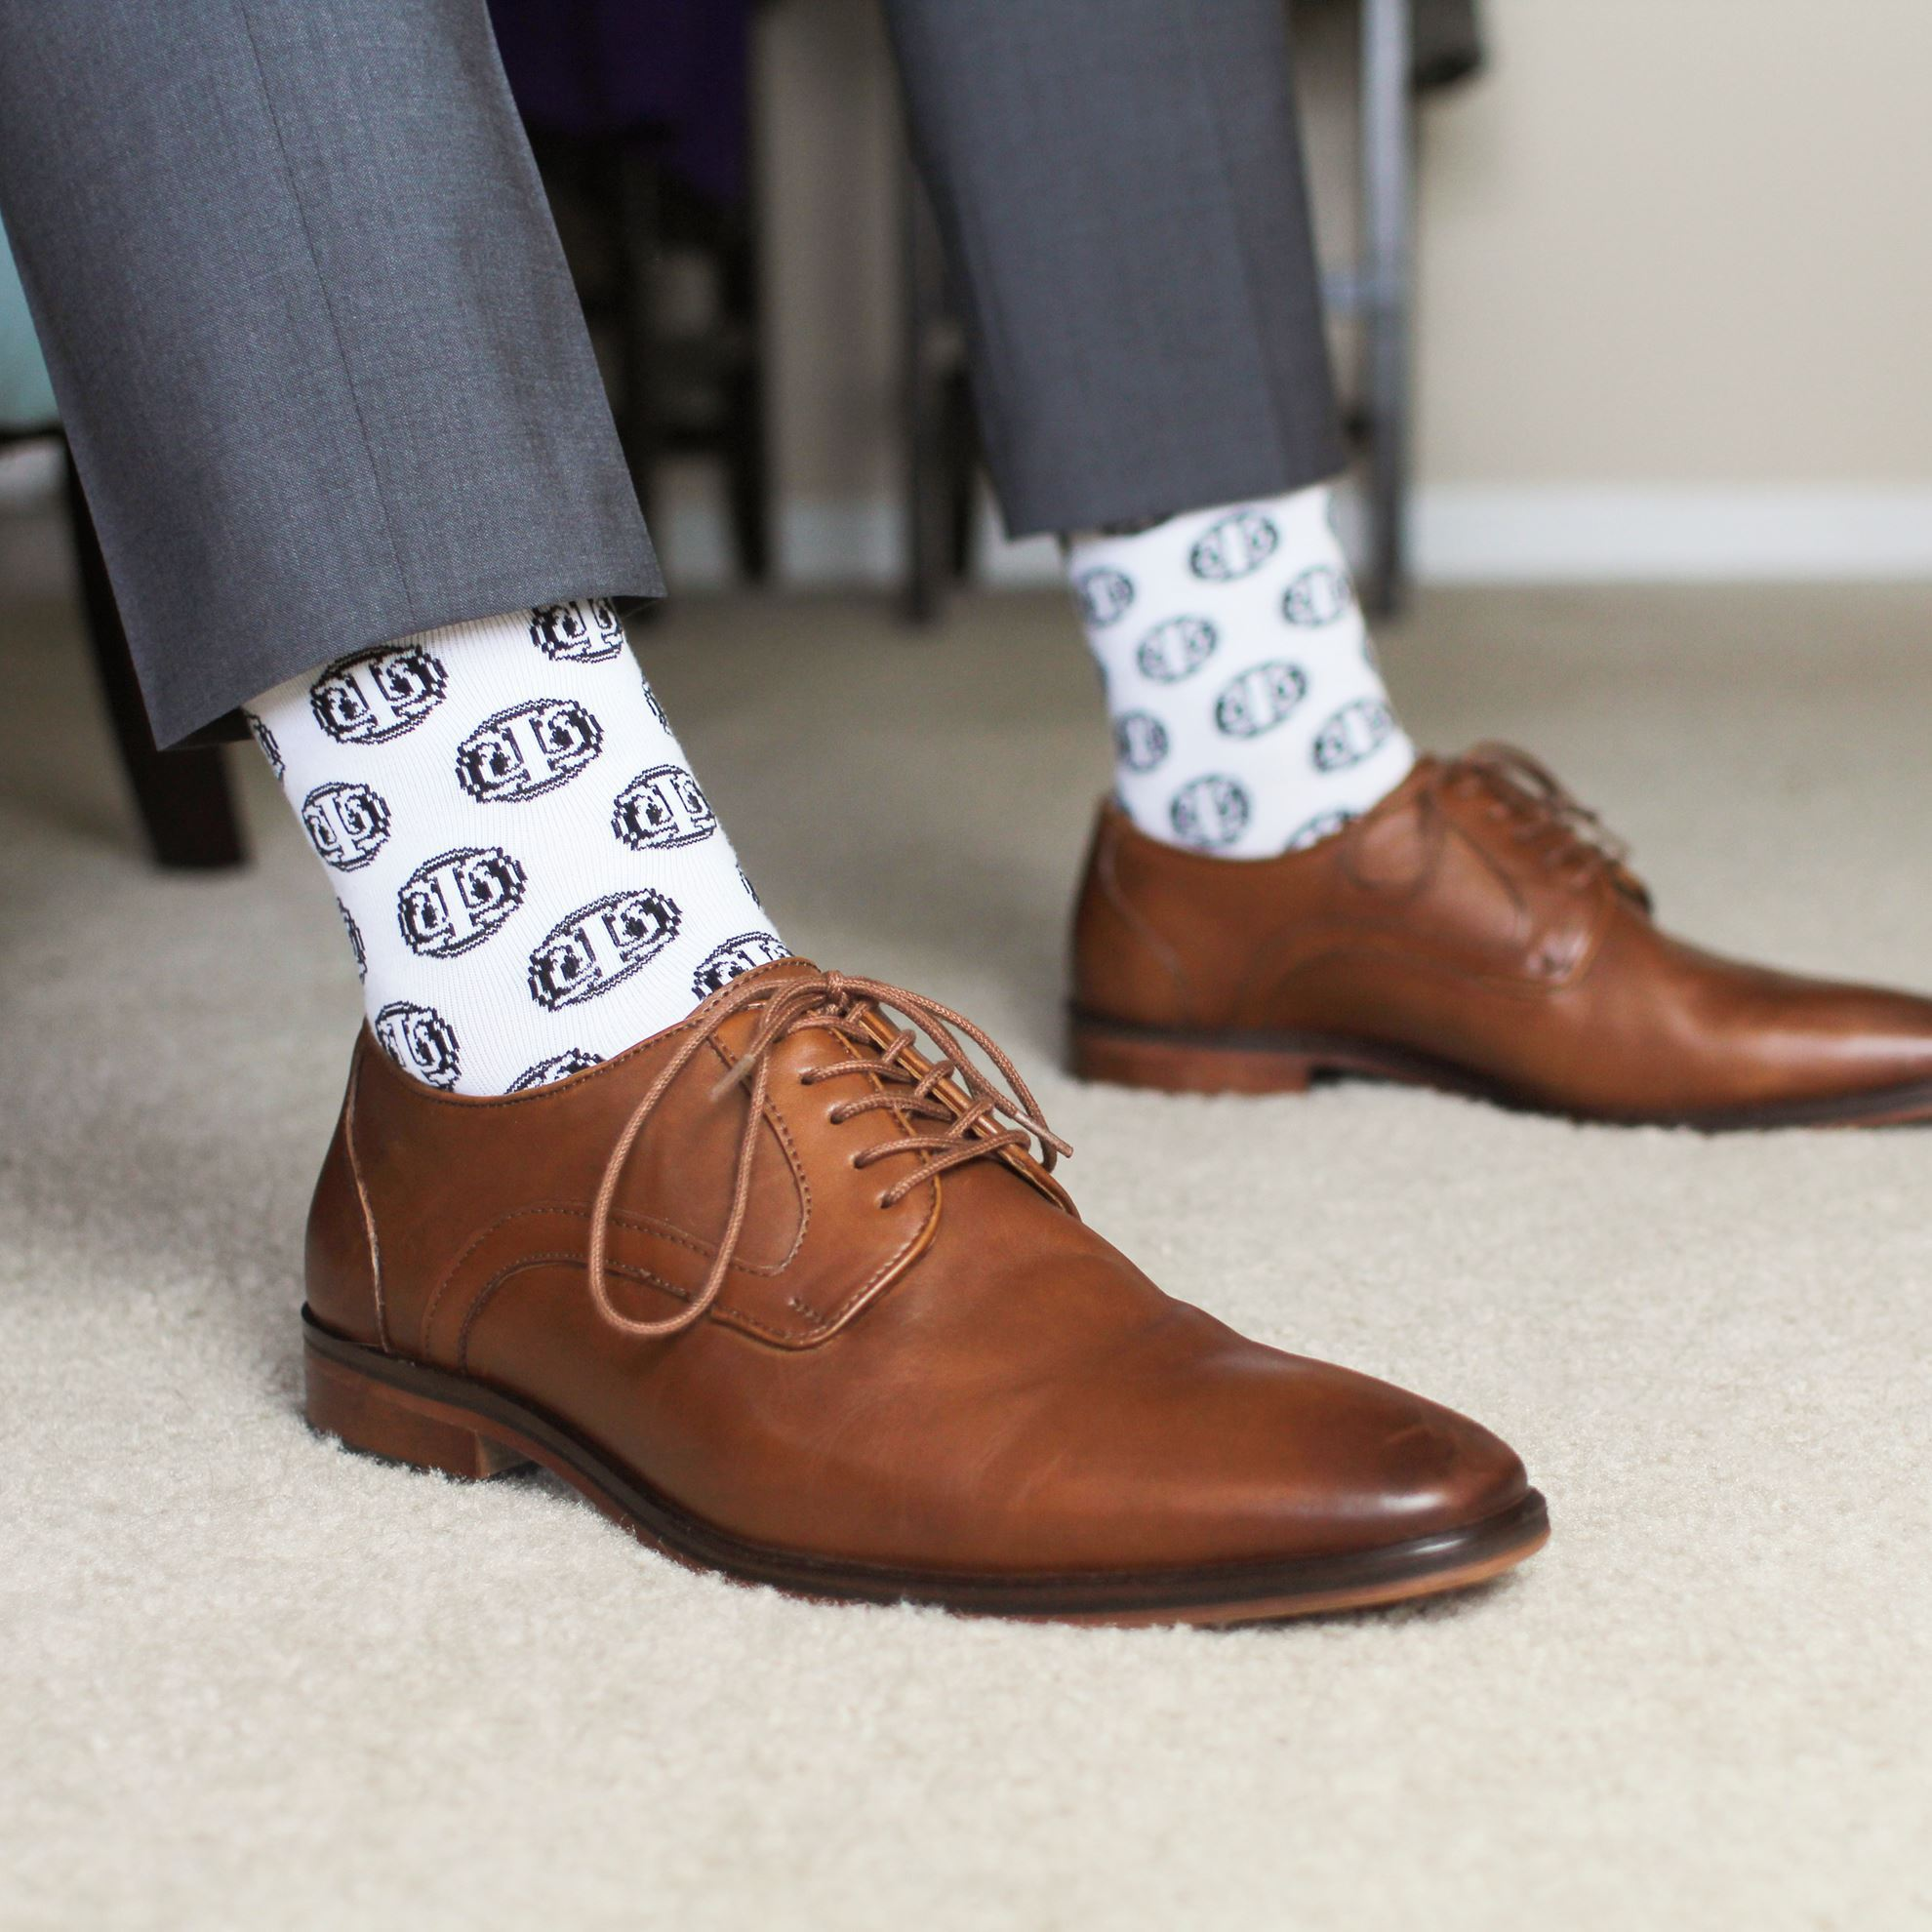 Socks with Psi Chi Seal pattern with dress shoes